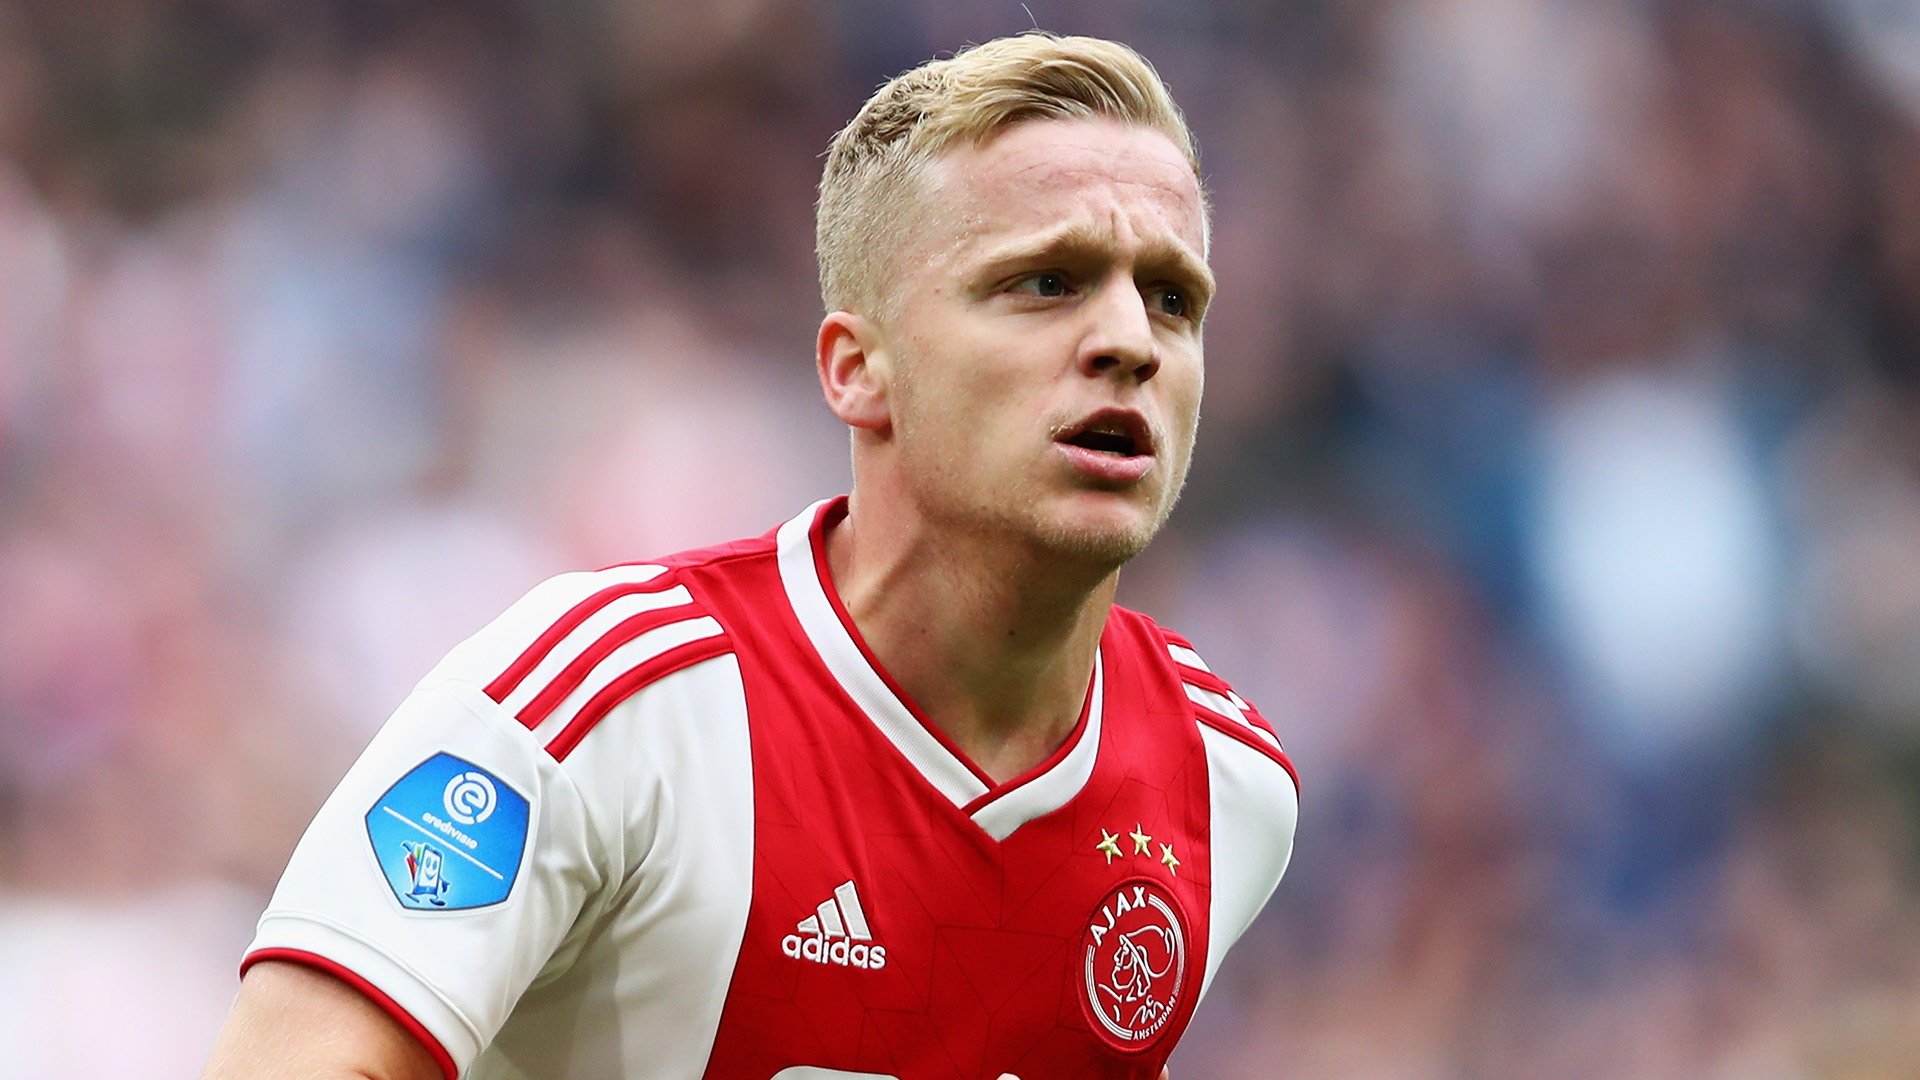 Real Madrid to sign Donny van de Beek 'in the coming days'